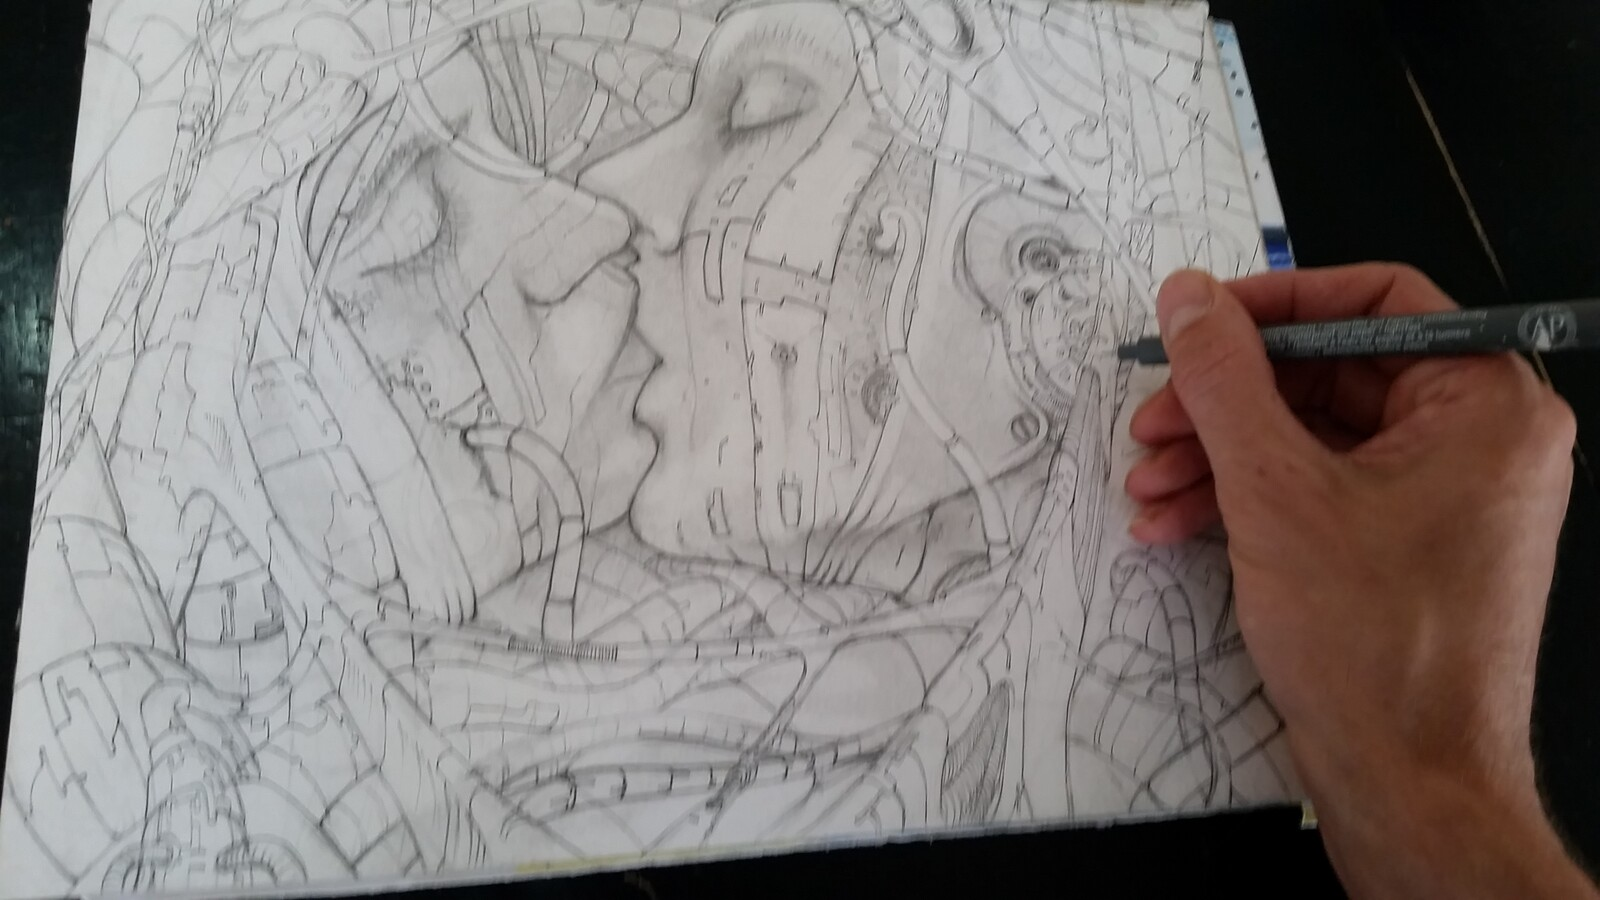 Work in progress: First ink layer, defining the outlines.